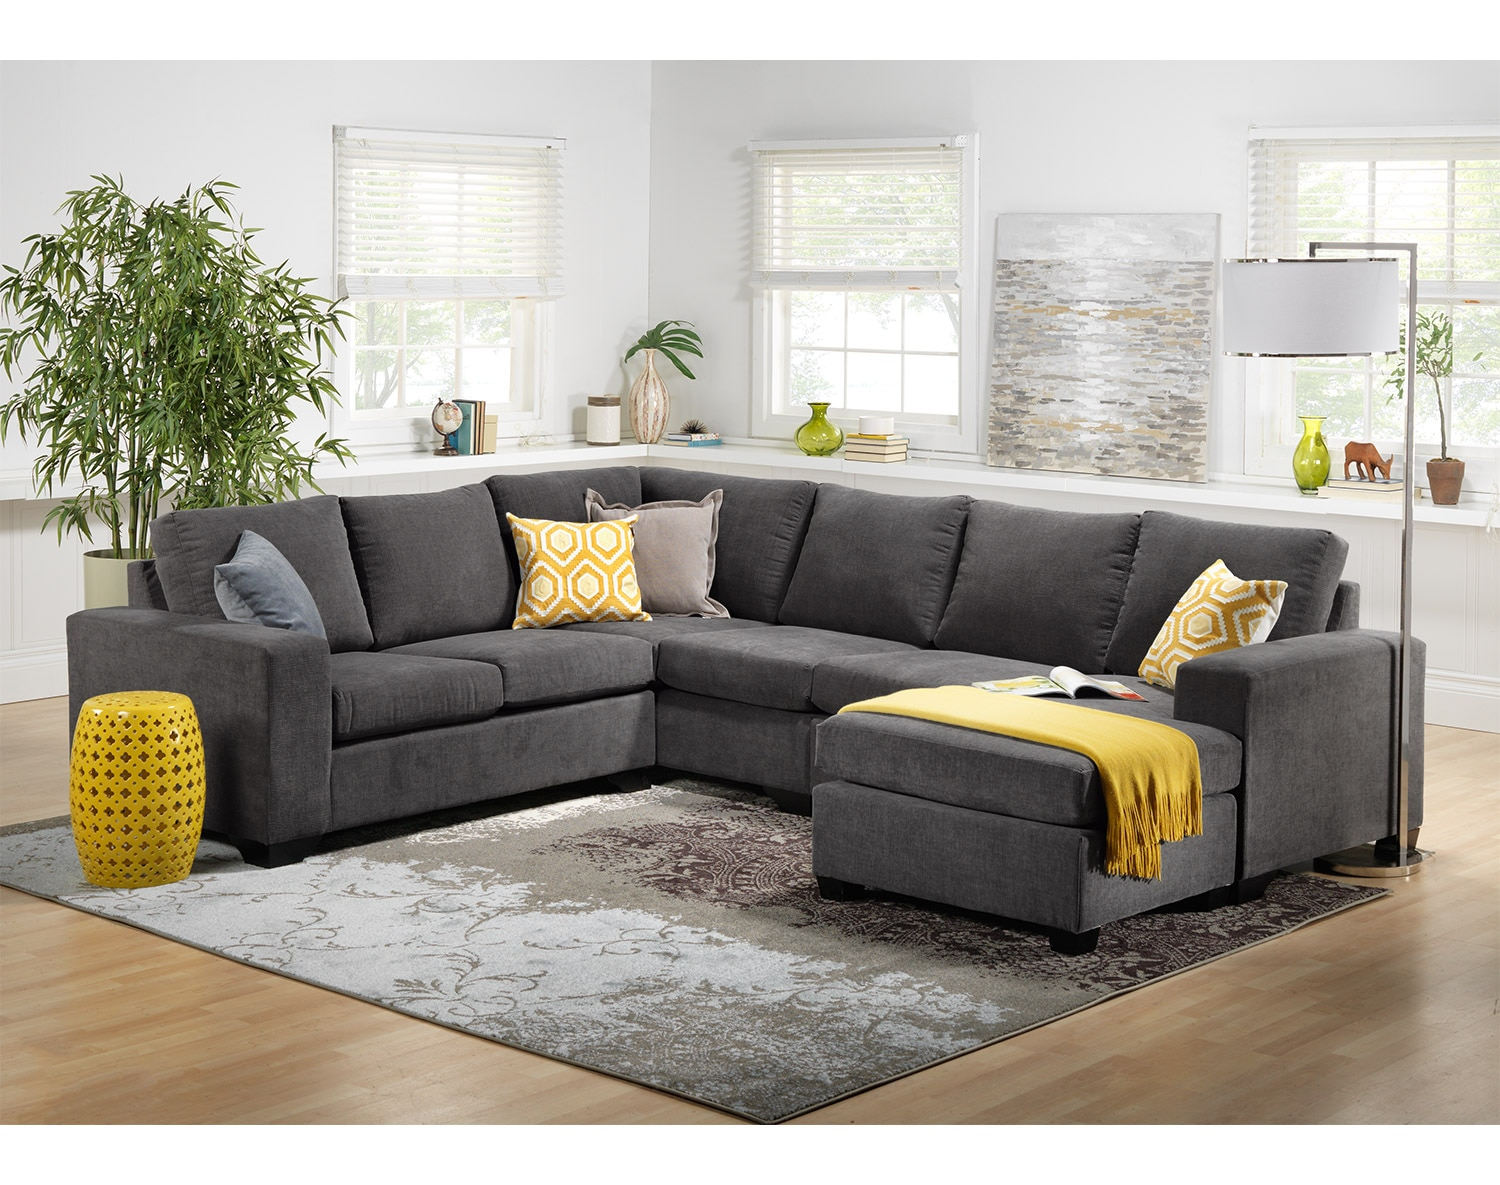 The Danielle Collection - Grey